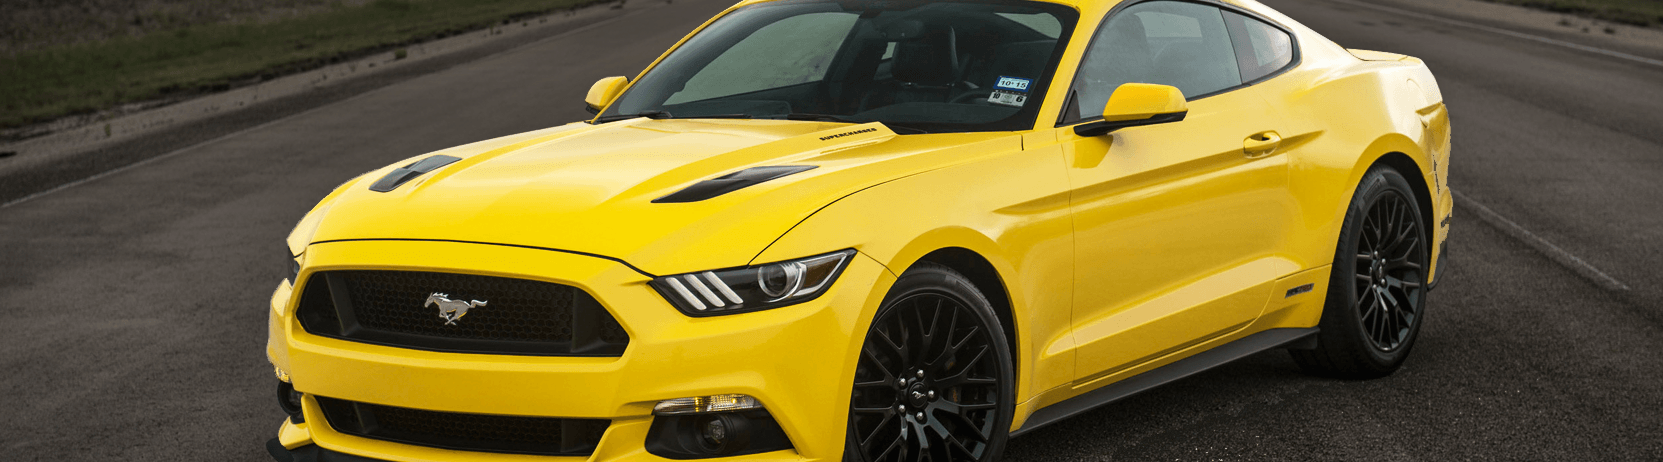 Bright yellow wrap on a Mustang